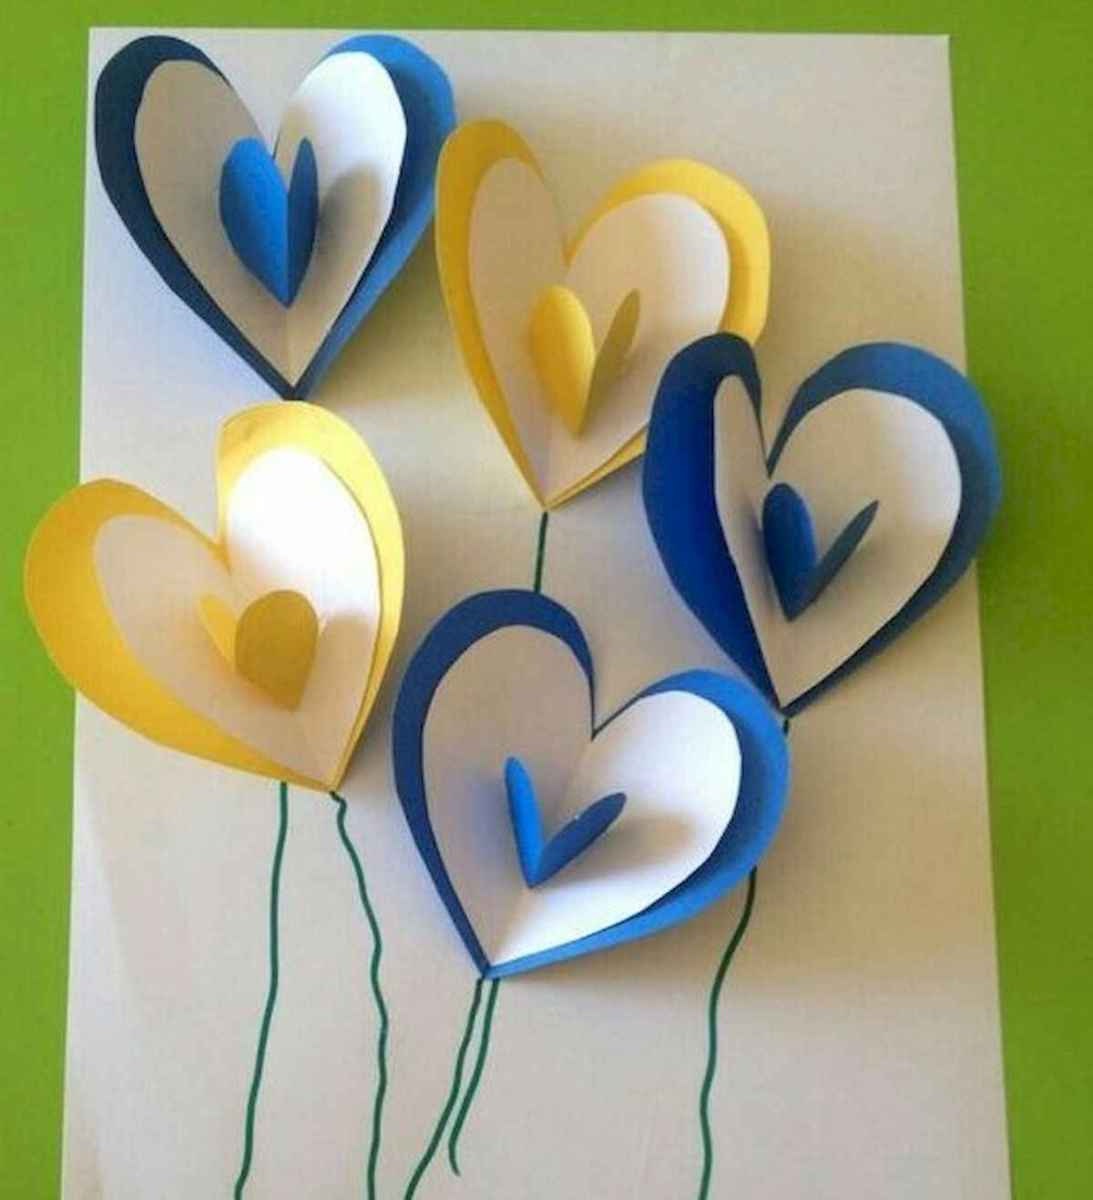 50 Awesome Spring Crafts for Kids Ideas (51)